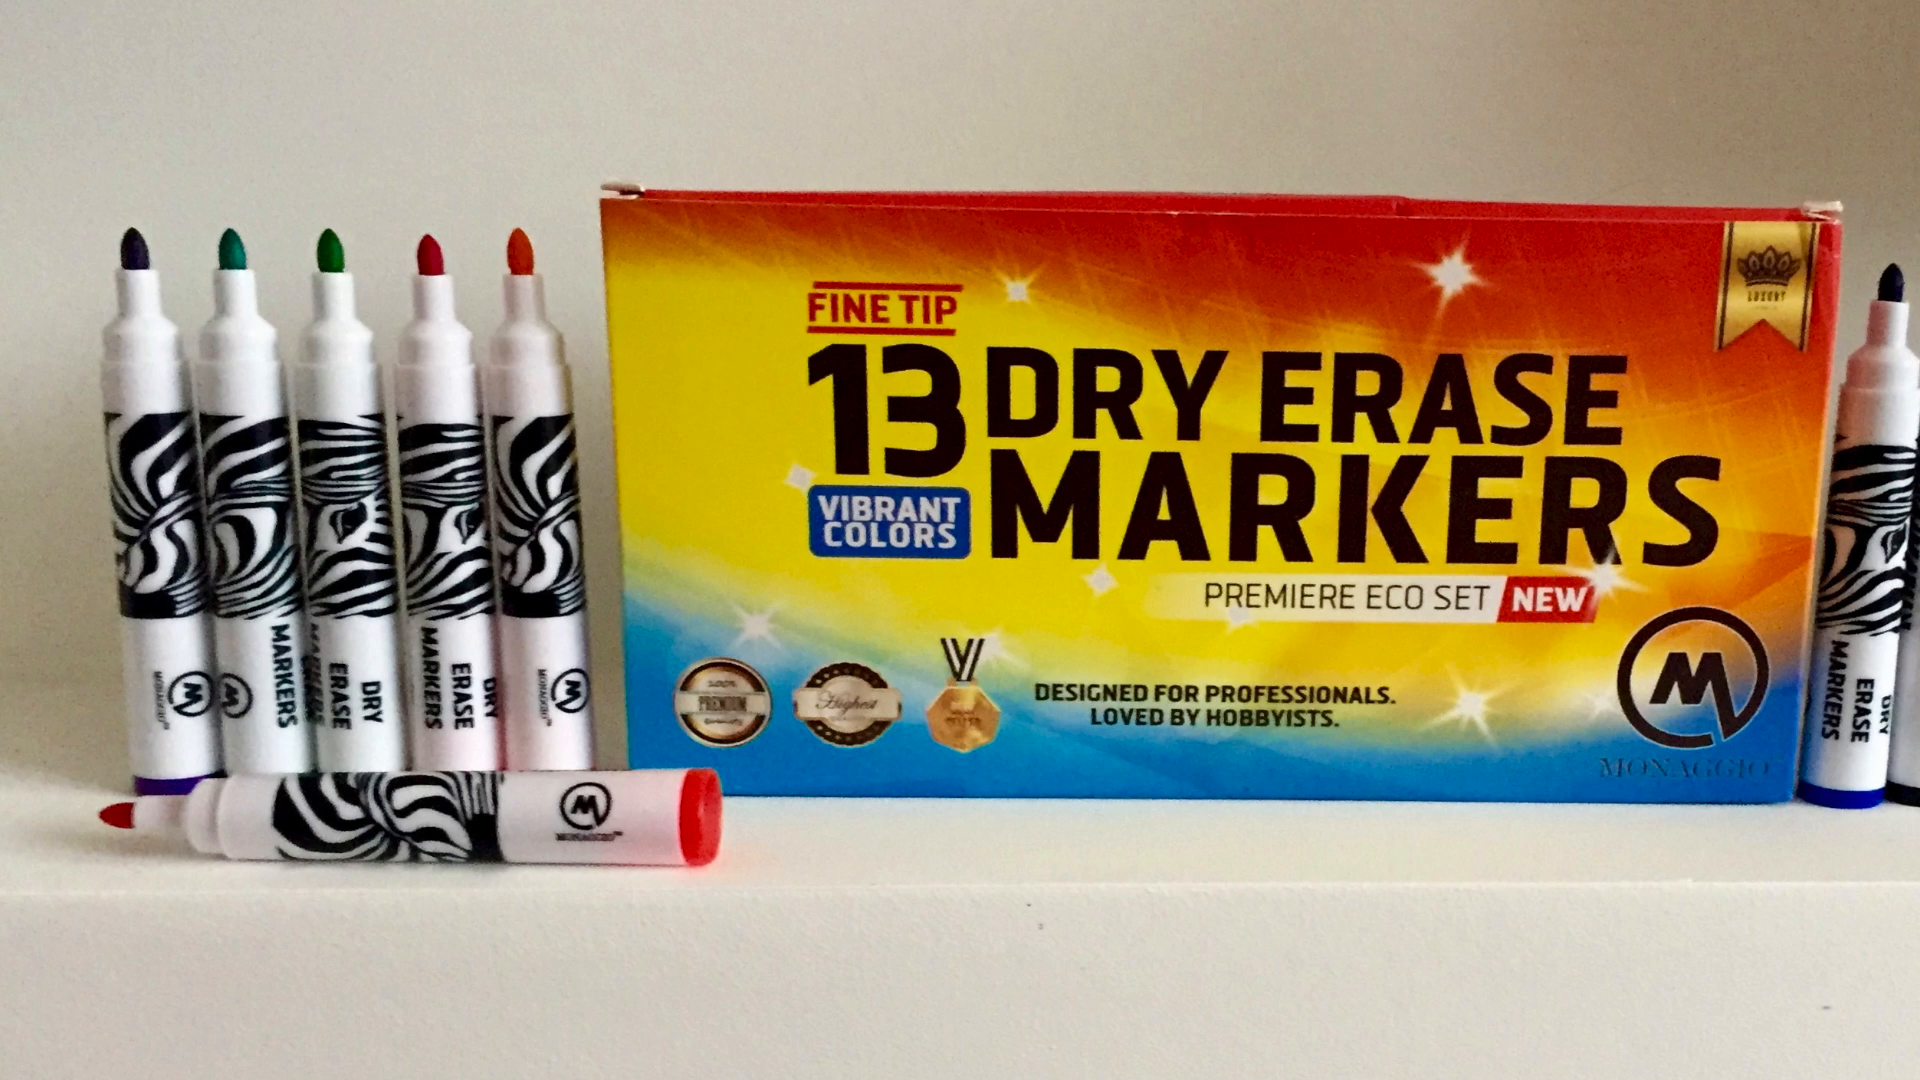 Amazon.com: Customer reviews: Dry Erase Markers for